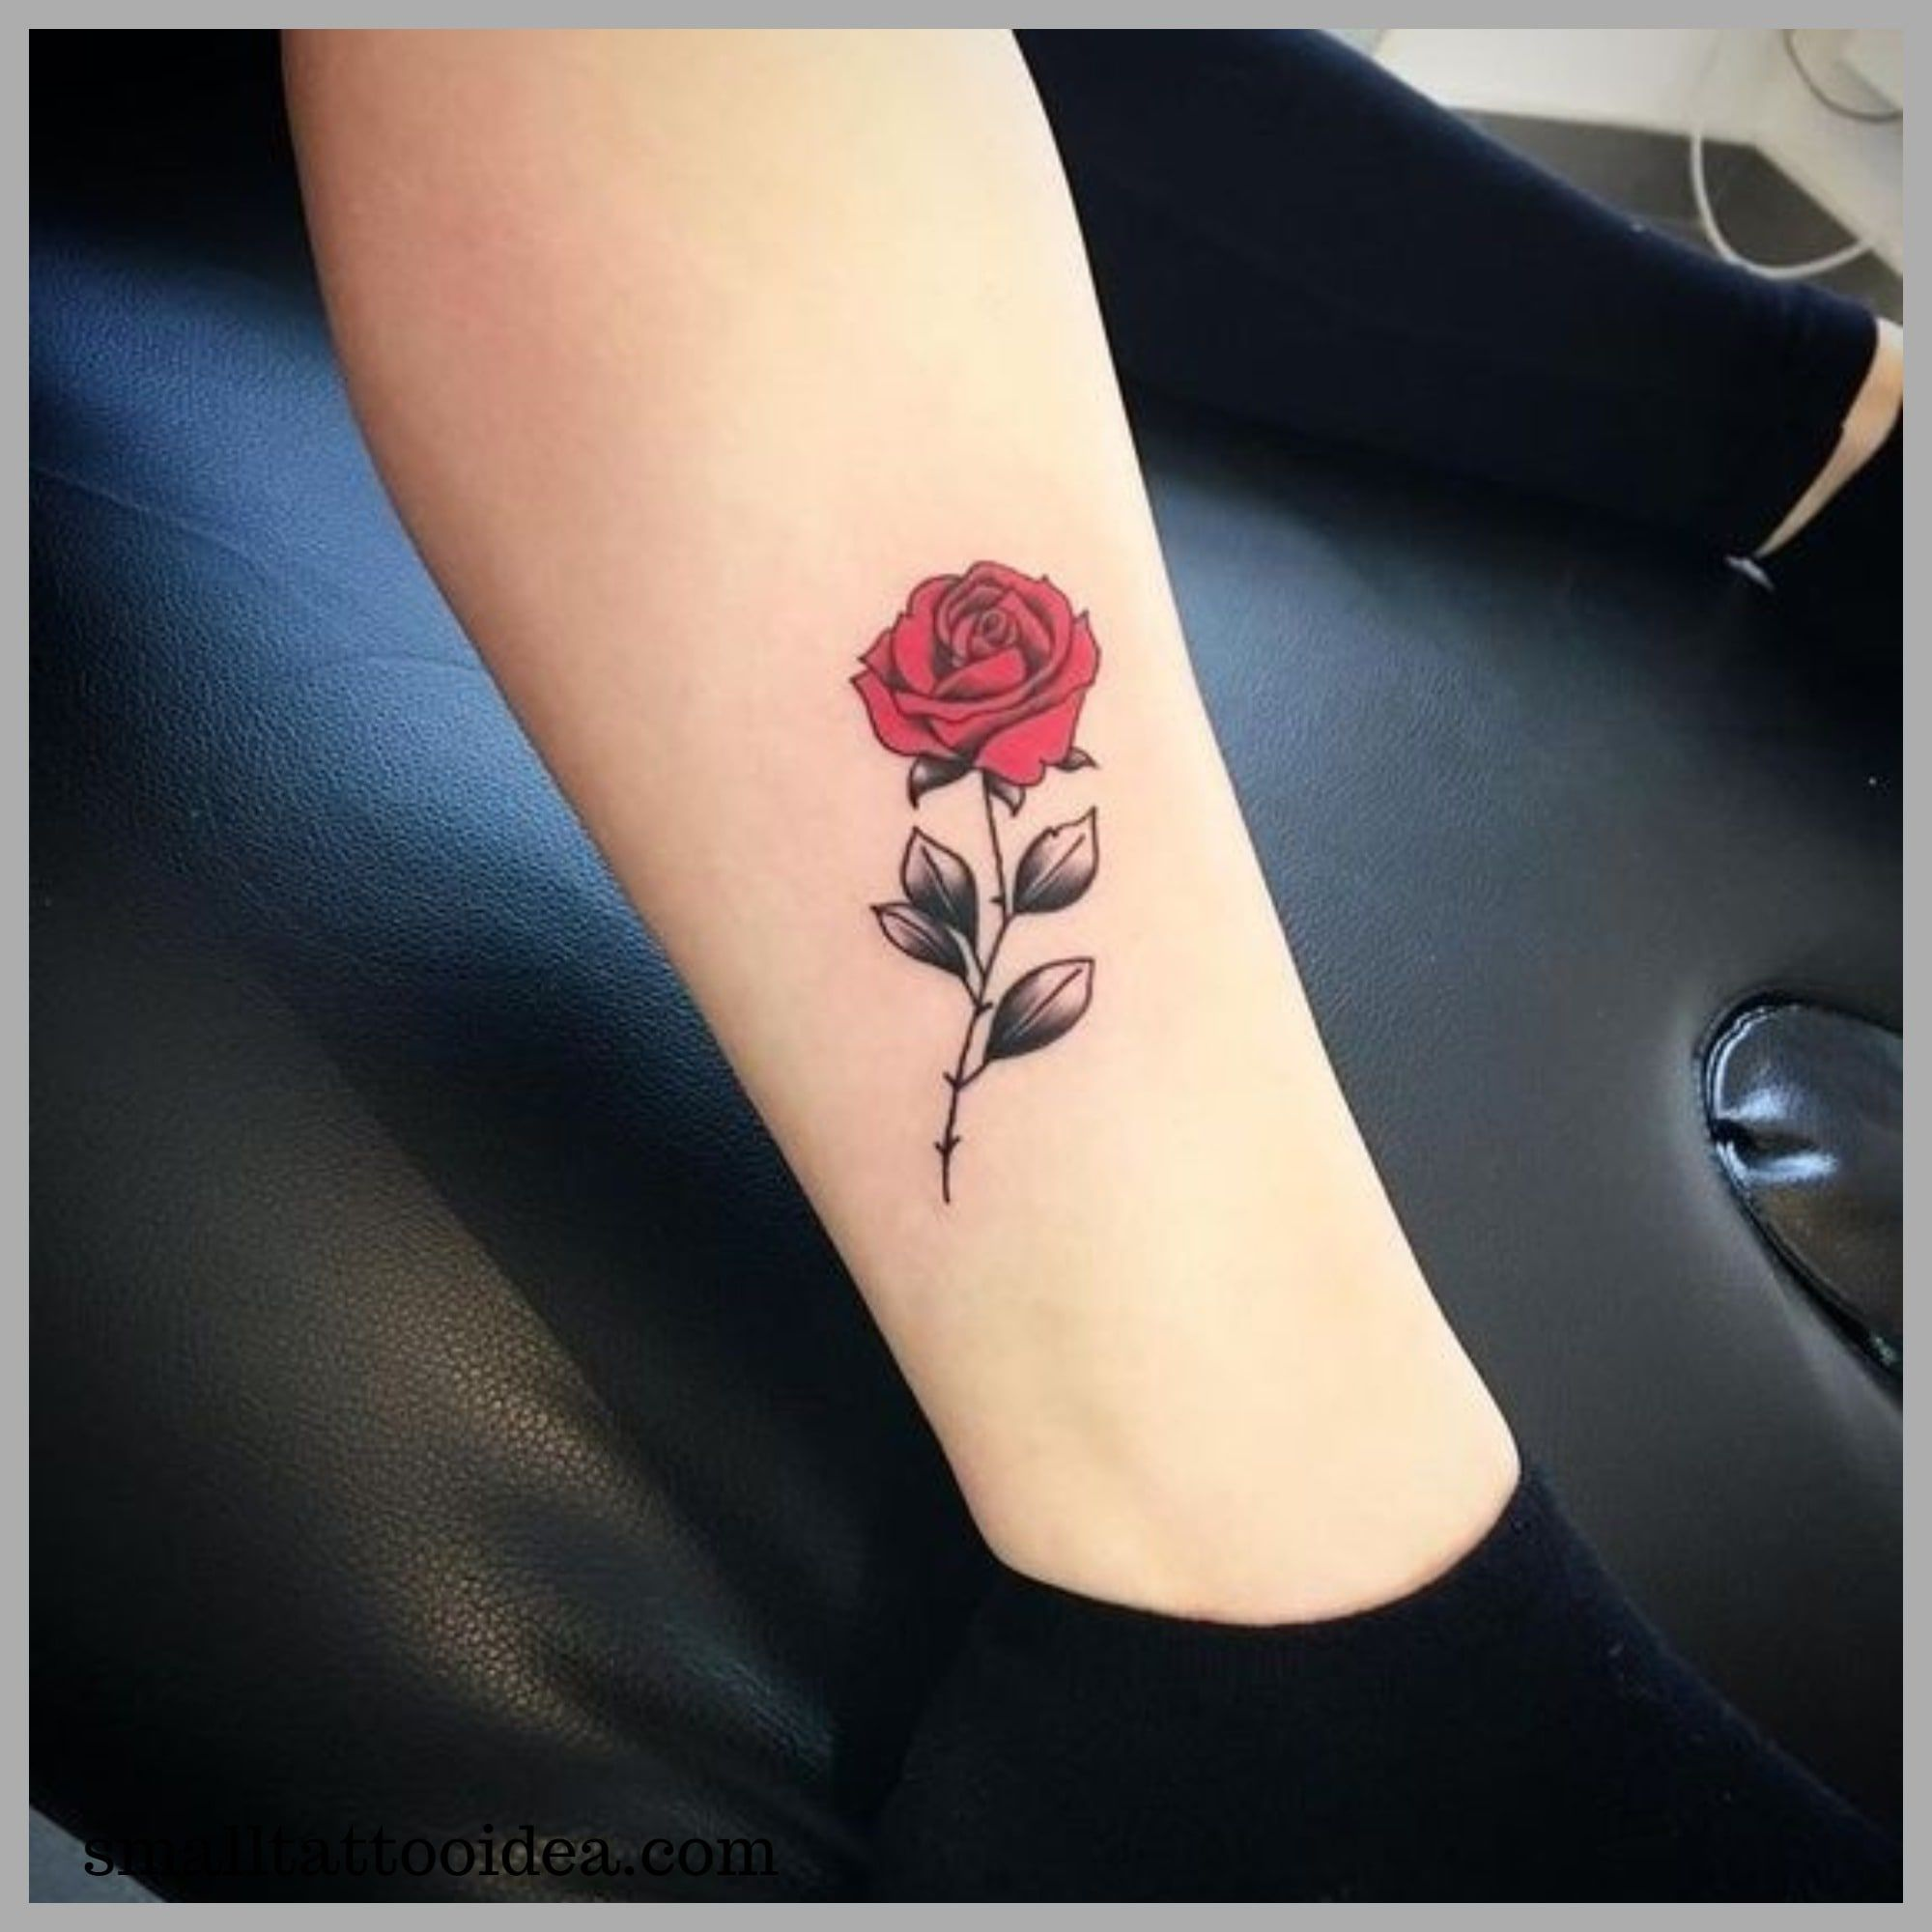 35 Small Red Rose Tattoo Ideas For Girls Tattoo Type Tattoo Tiny Rose Tattoos Small Tattoos